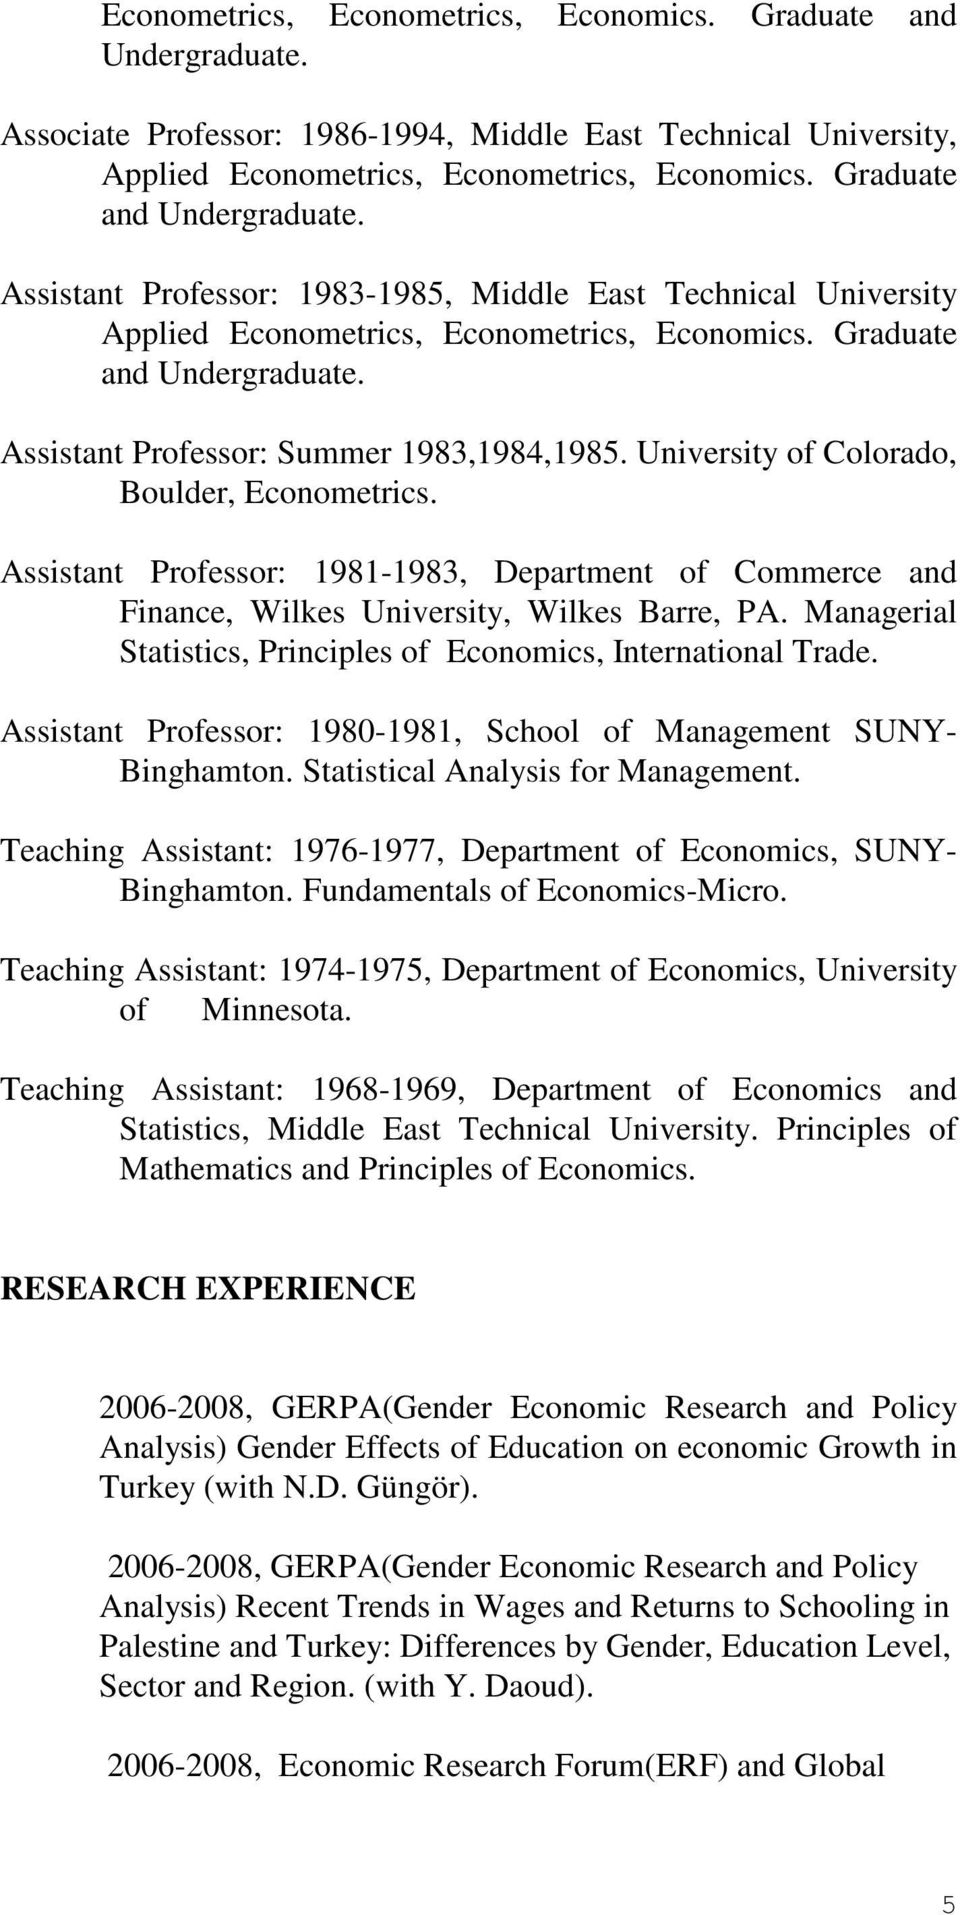 Assistant Professor: Summer 1983,1984,1985. University of Colorado, Boulder, Econometrics. Assistant Professor: 1981-1983, Department of Commerce and Finance, Wilkes University, Wilkes Barre, PA.